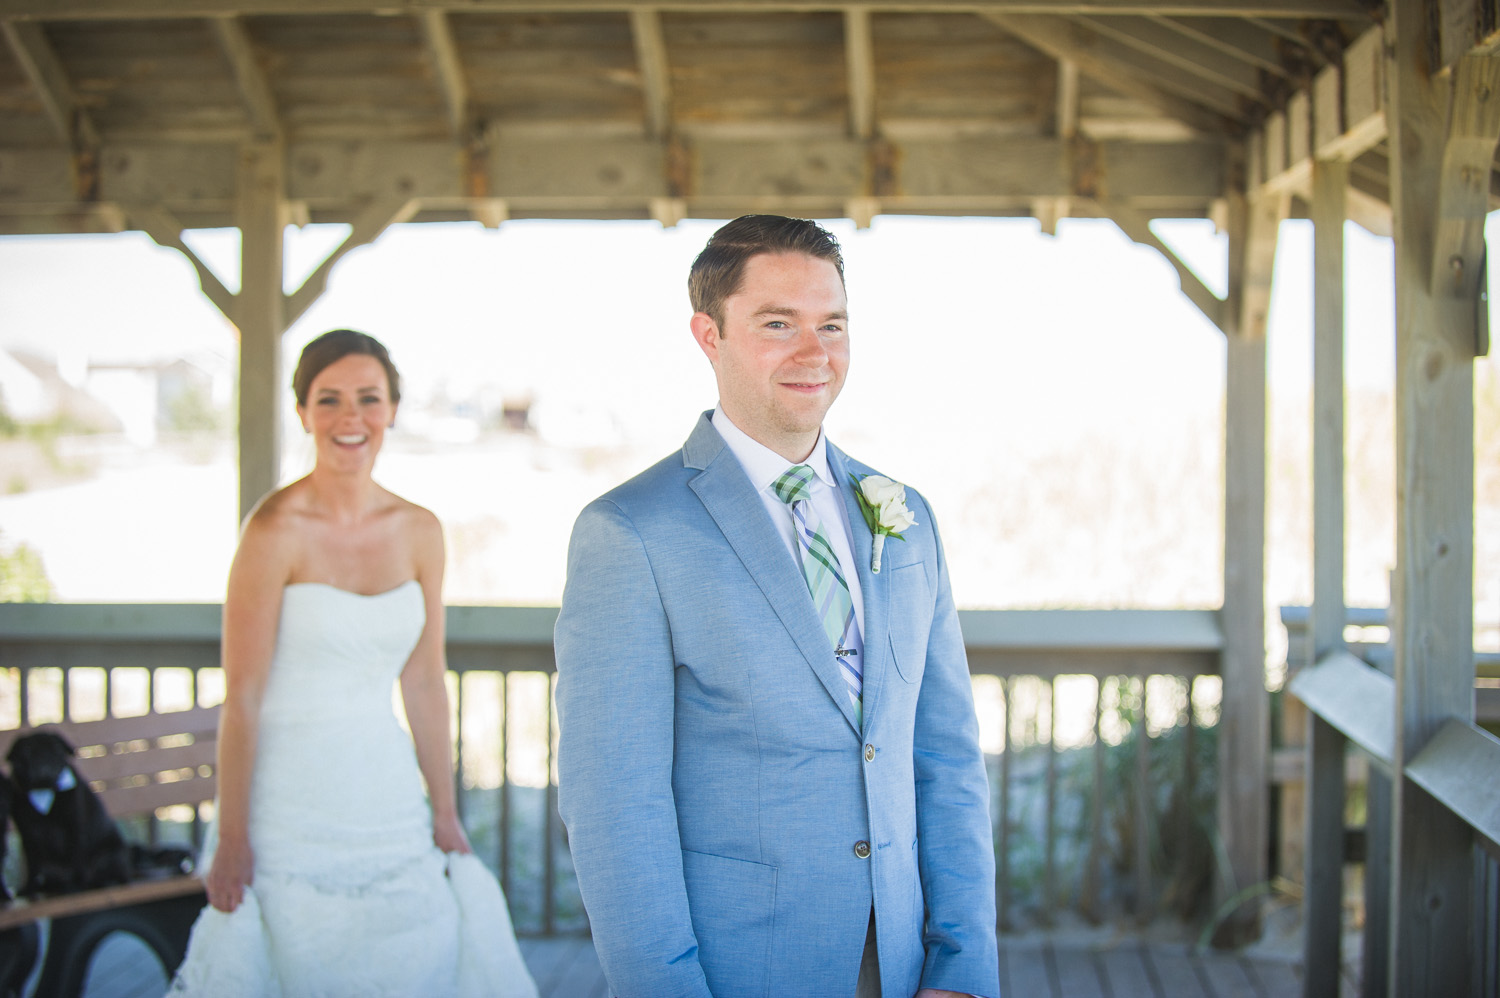 stone-harbor-wedding-photography-1 (10).jpg